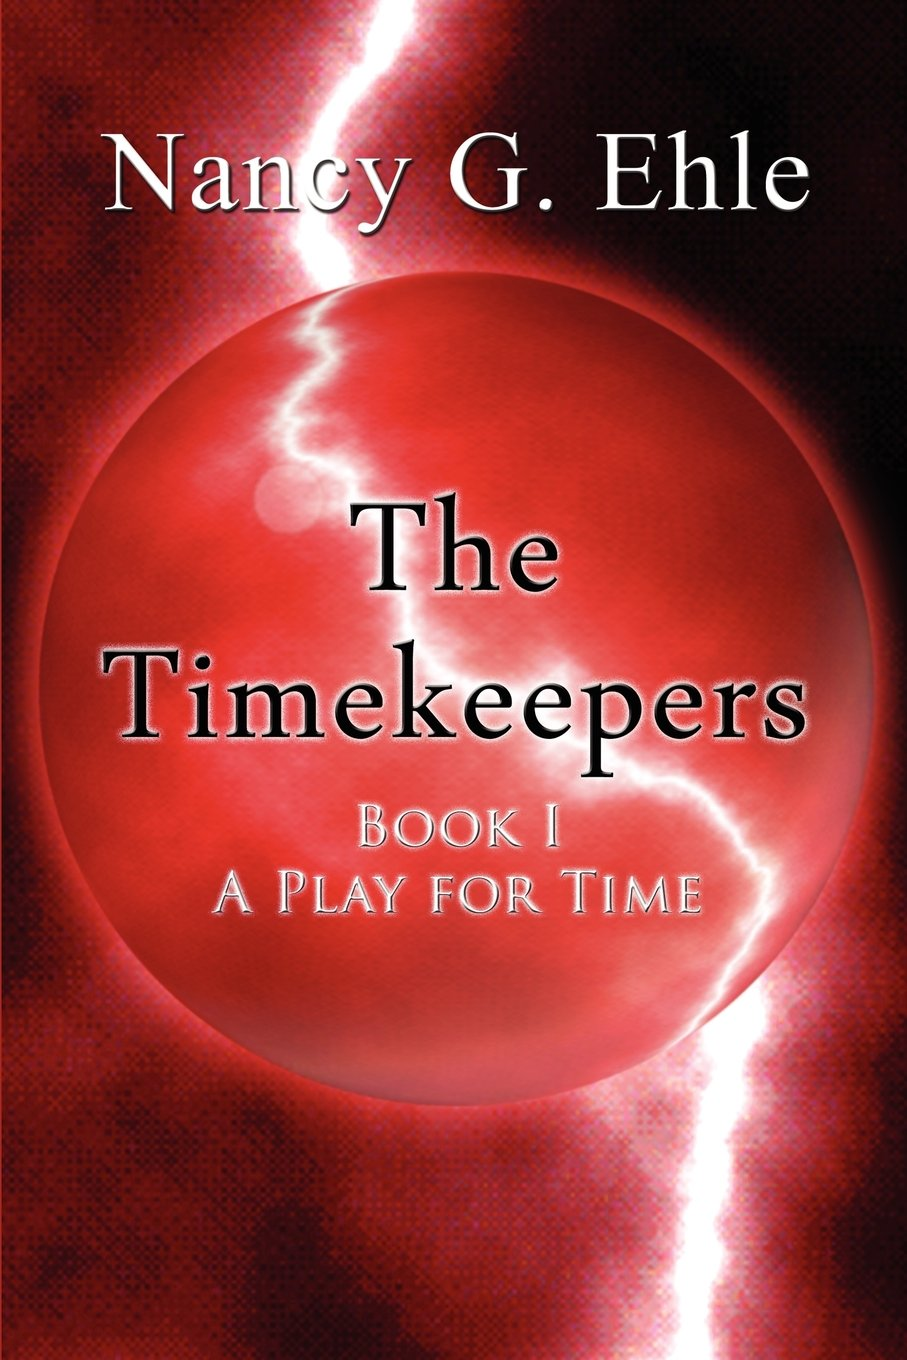 Download The Timekeepers: Book I - A Play for Time PDF